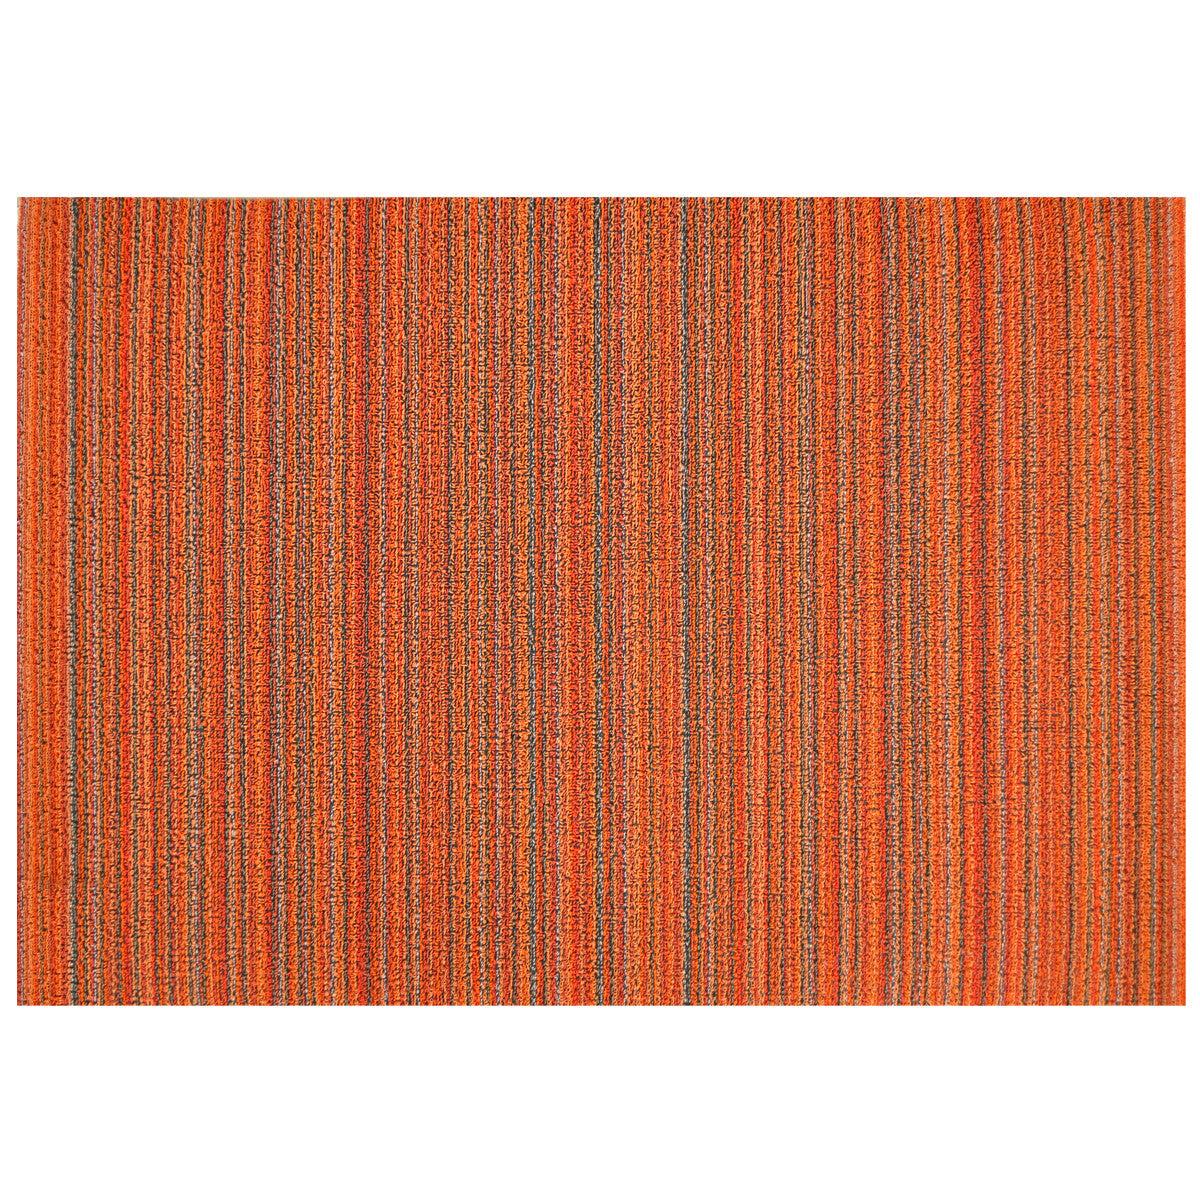 Skinny Stripe Shag Orange Floor Mat